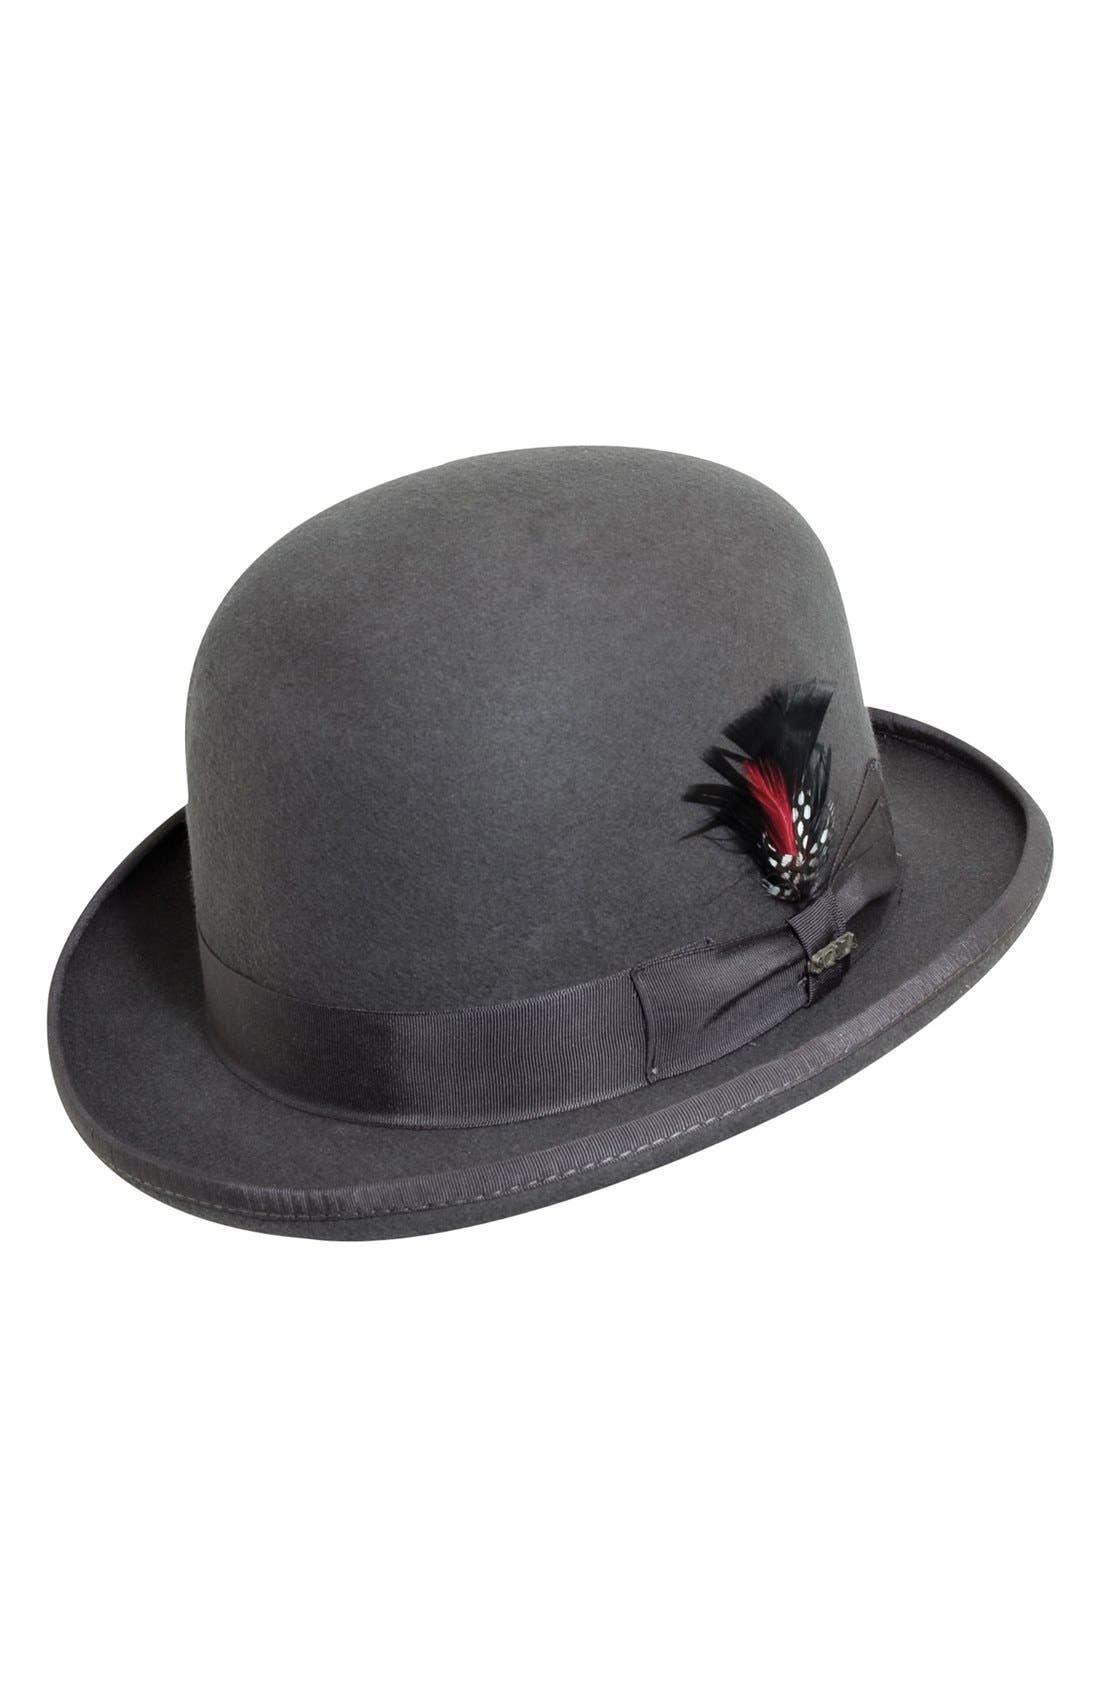 'Classico' Wool Felt Derby Hat,                         Main,                         color, CHARCOAL